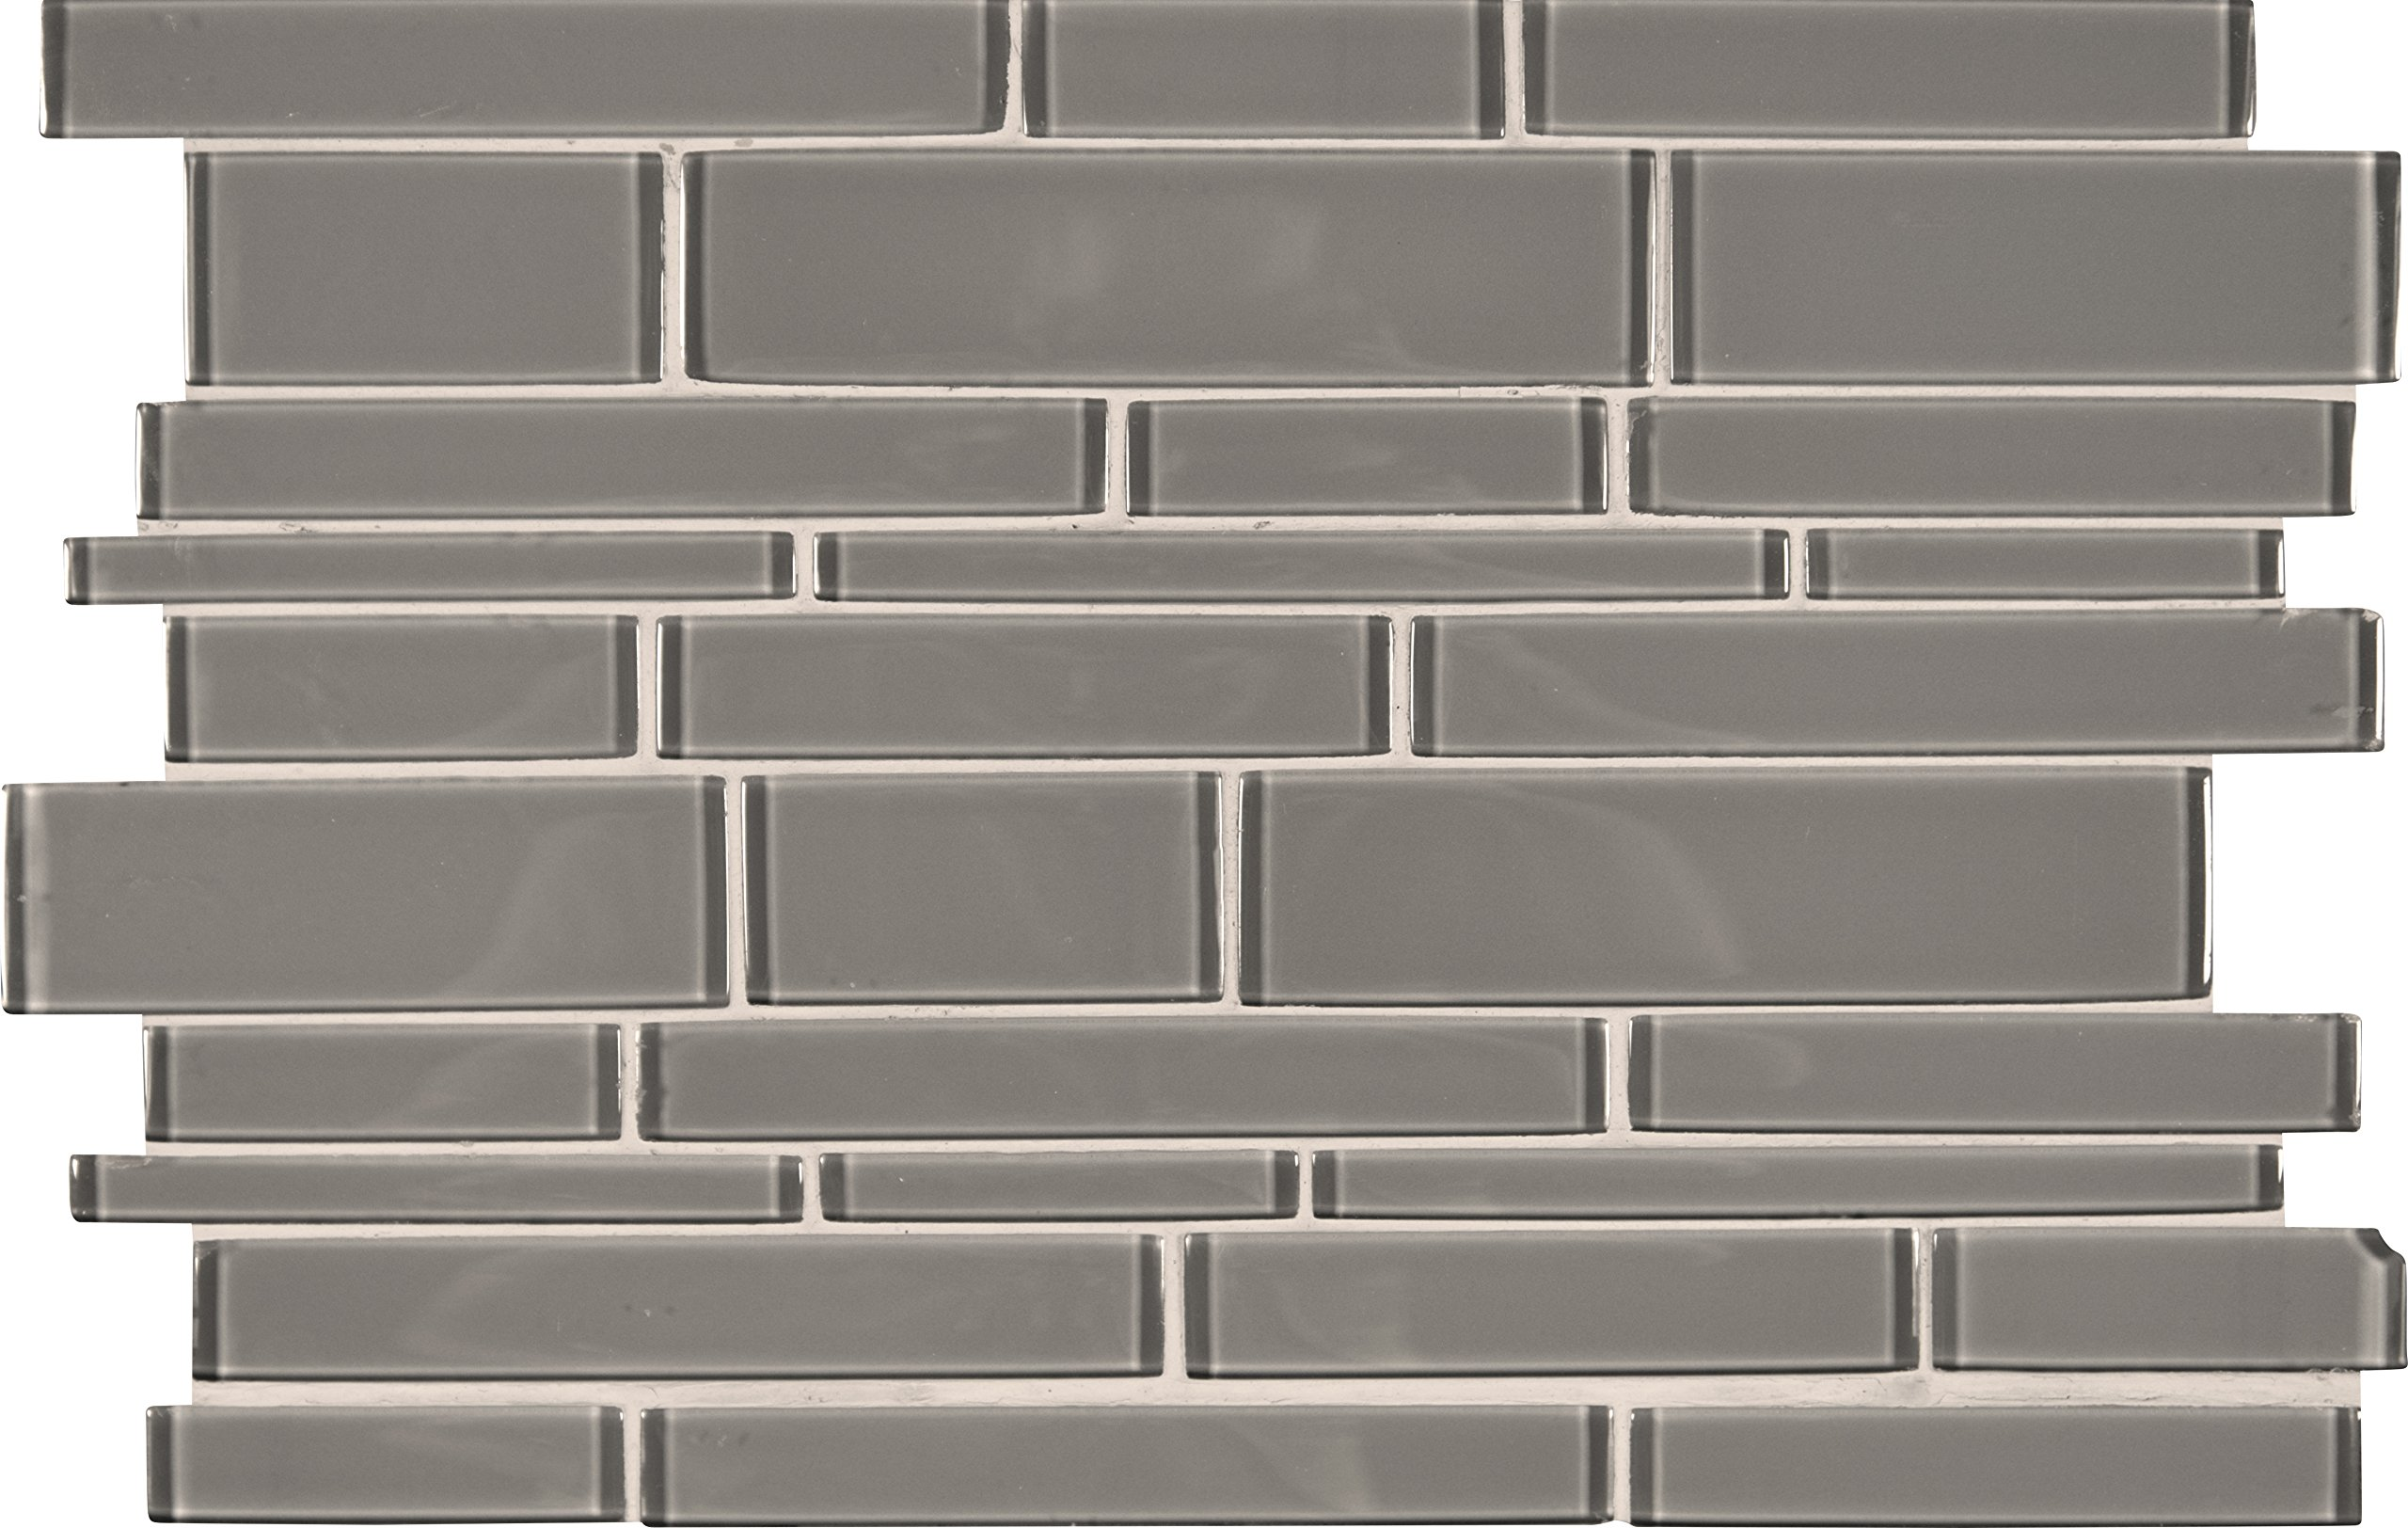 M S International Pebble Interlocking 12 In. X 18 In. X 8 mm Glass Stone Mesh-Mounted Mosaic Tile, (15 sq. ft., 10 pieces per case)